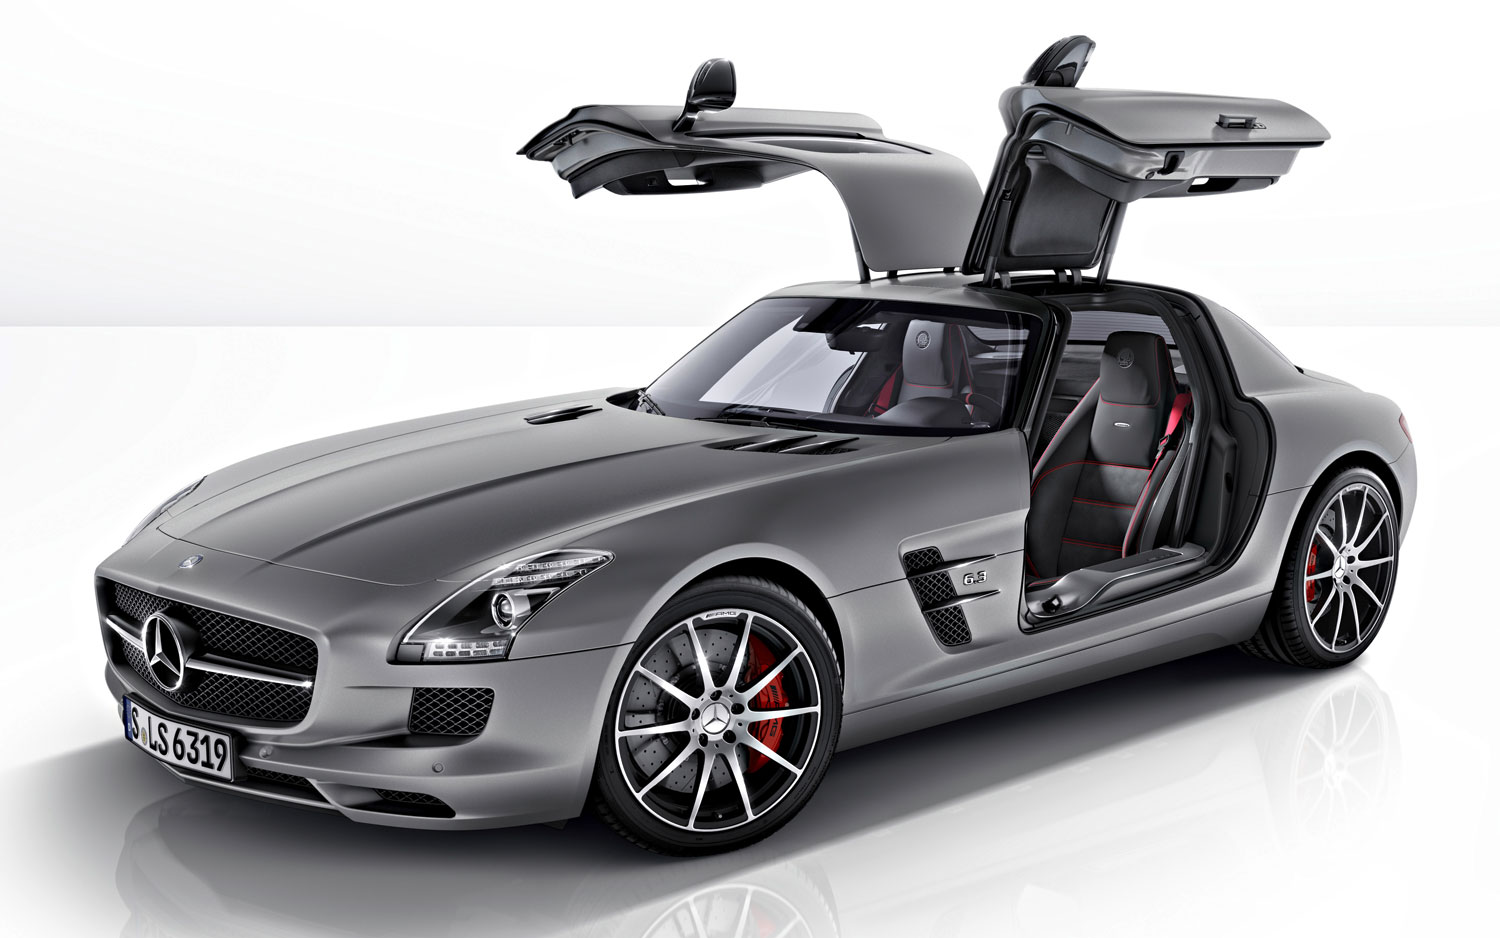 2013 mercedes sls amg gt new name revised suspension more power. Black Bedroom Furniture Sets. Home Design Ideas